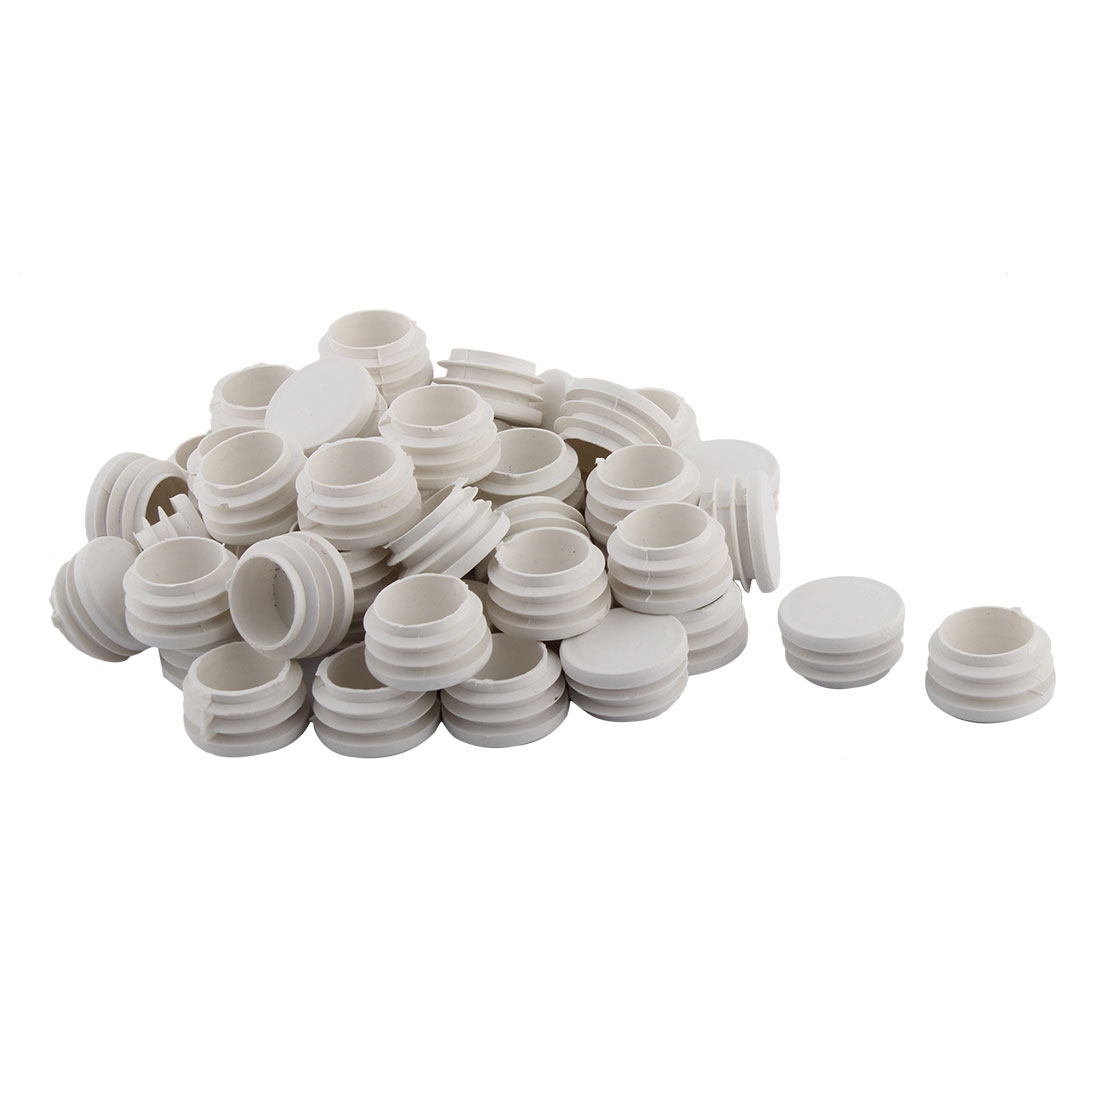 Home Office Plastic Round Shaped Table Chair Leg Feet Tube Pipe Insert White 32mm Dia 50 PCS